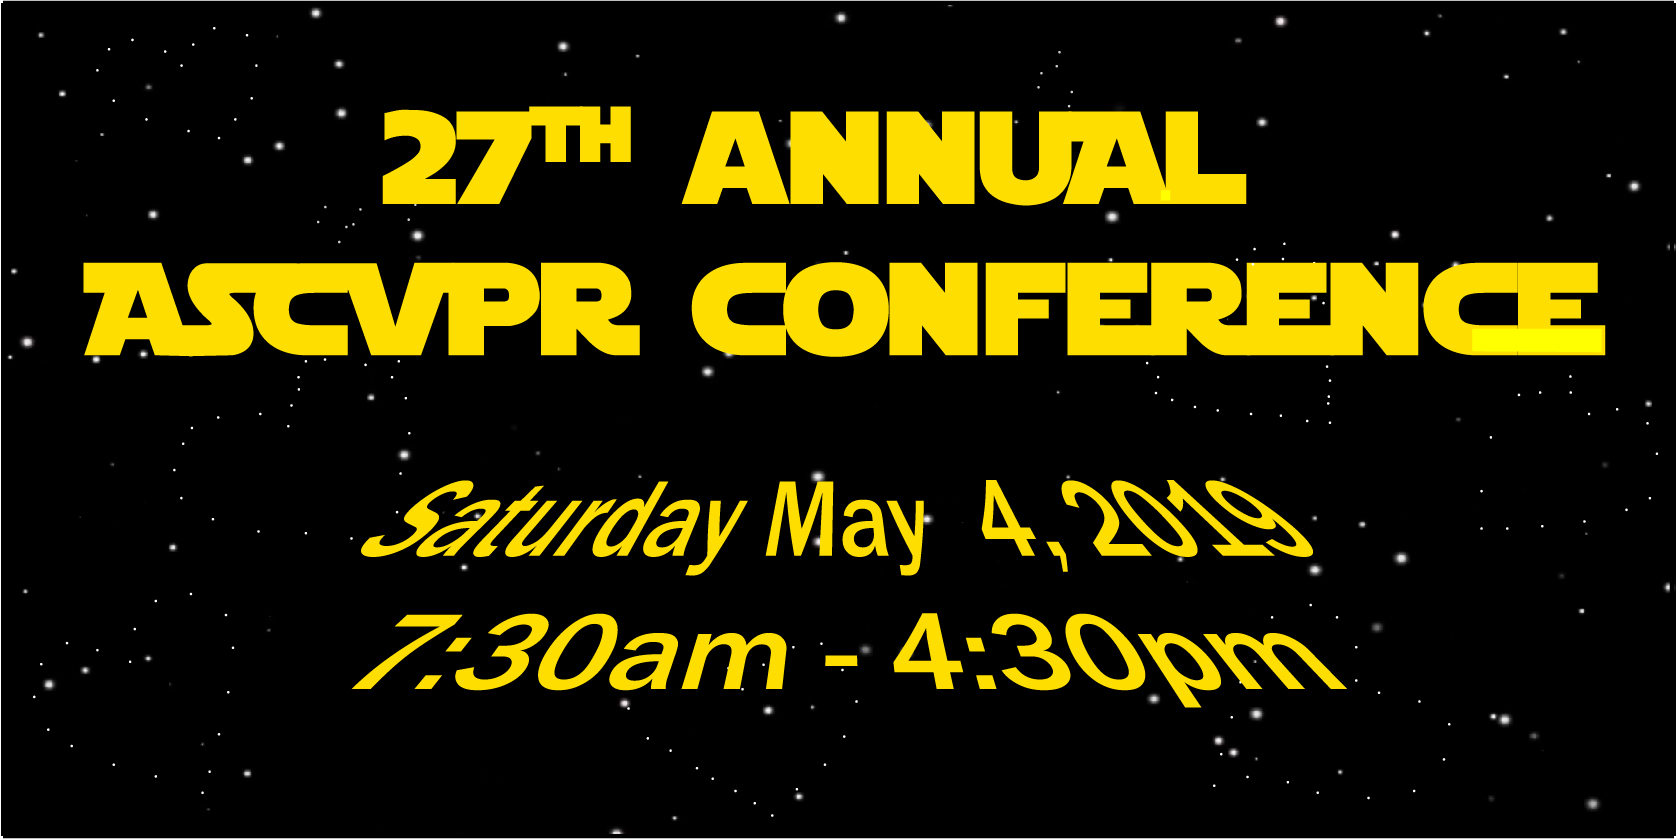 27th Annual ASCVPR Conference - May 4, 2019